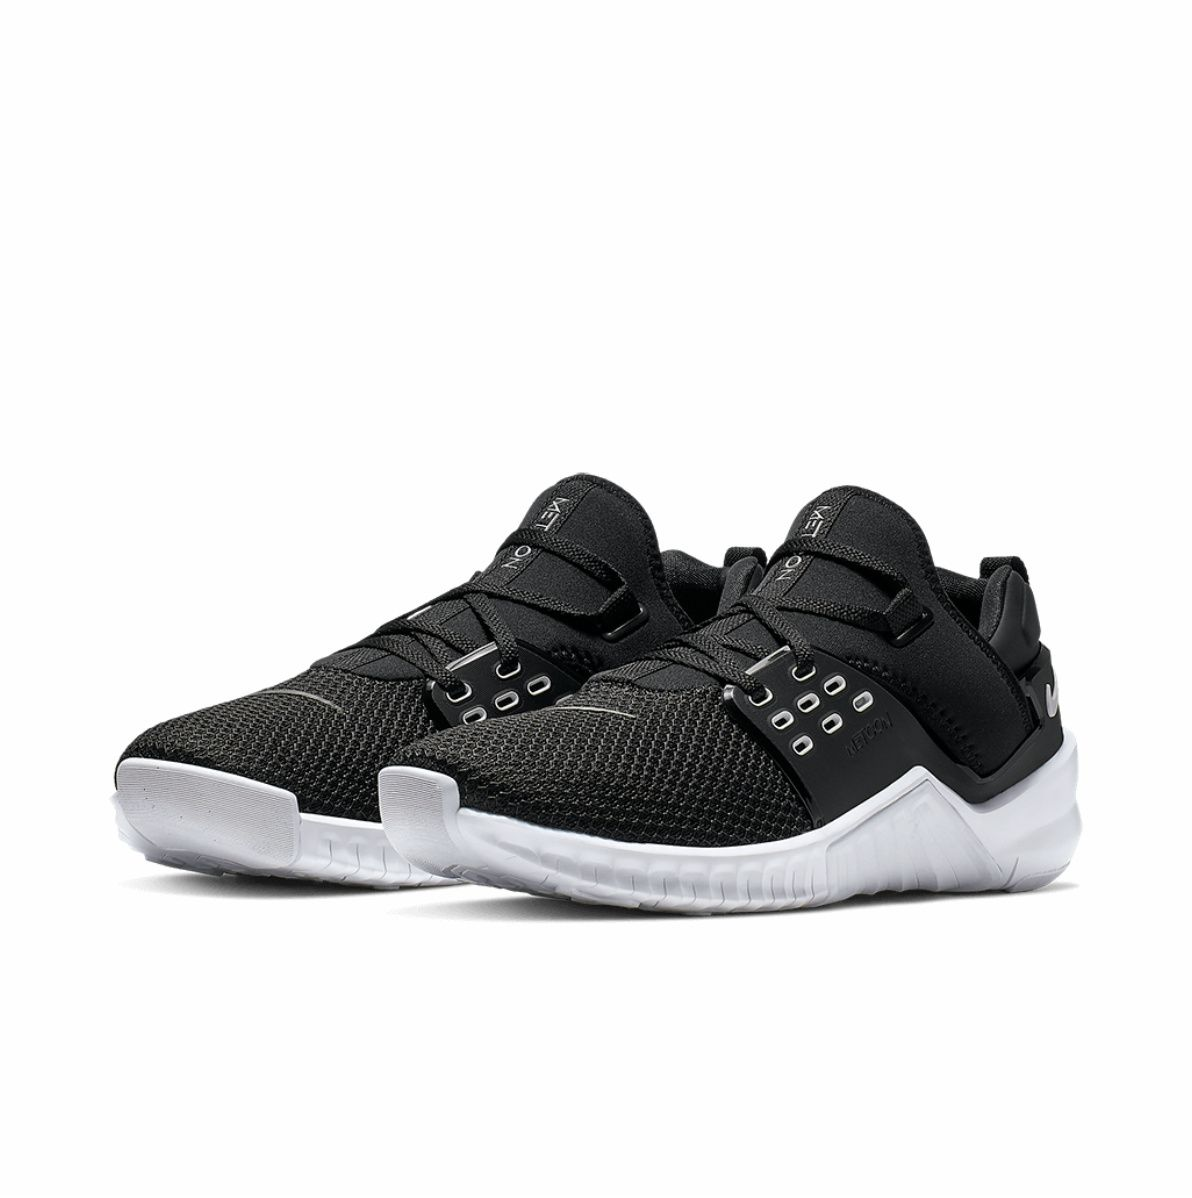 Tenis Nike Free X Metcon 2 Masculino Cross Fit Training